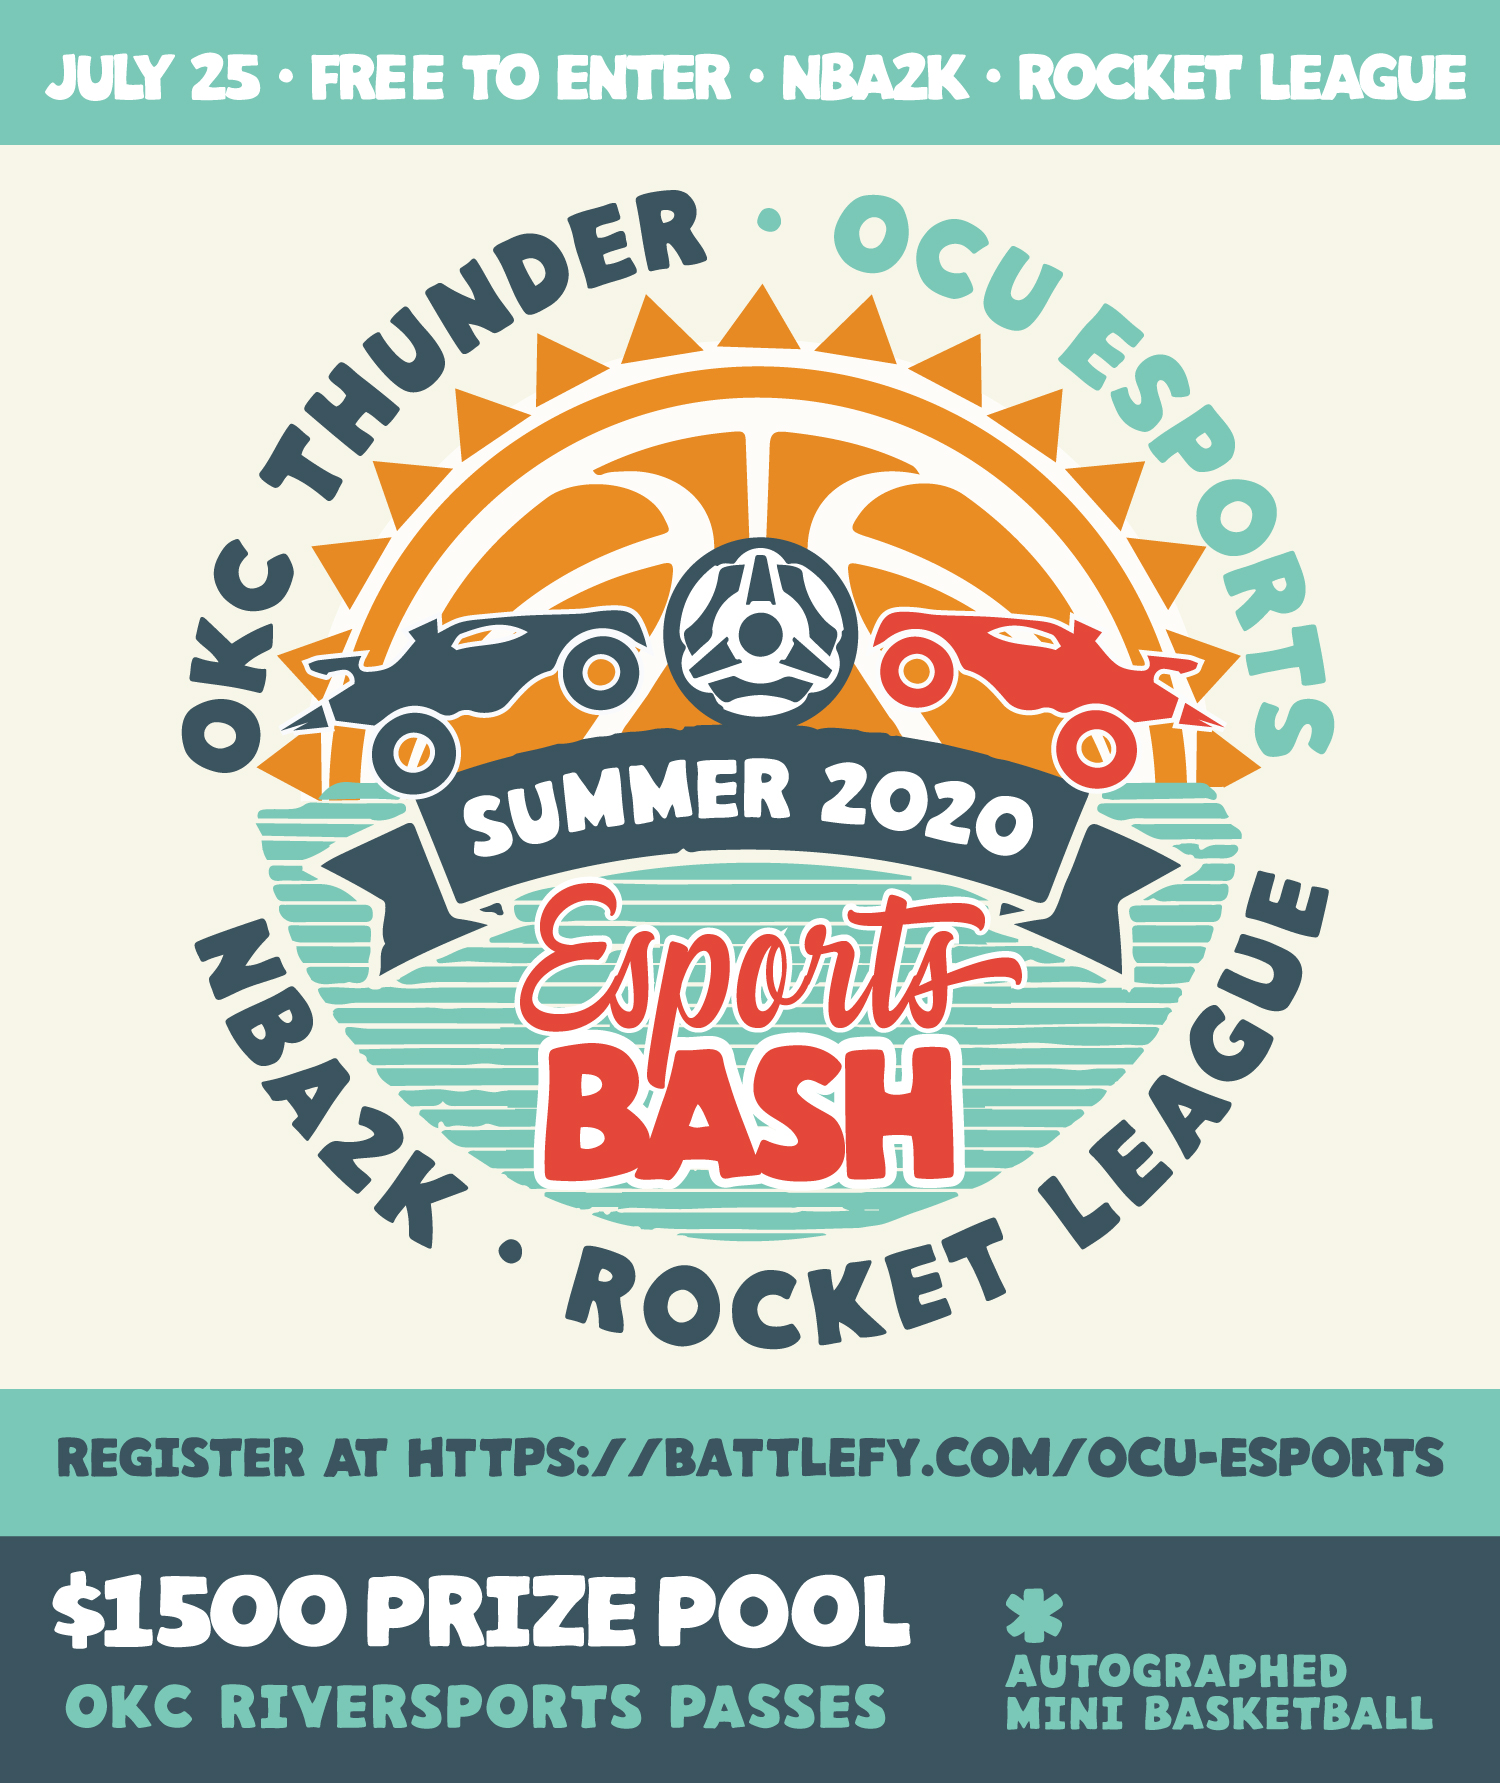 https://cdn.discordapp.com/attachments/679956546729541640/729748135005650994/THUNDER_ESPORTS_BASH.jpg